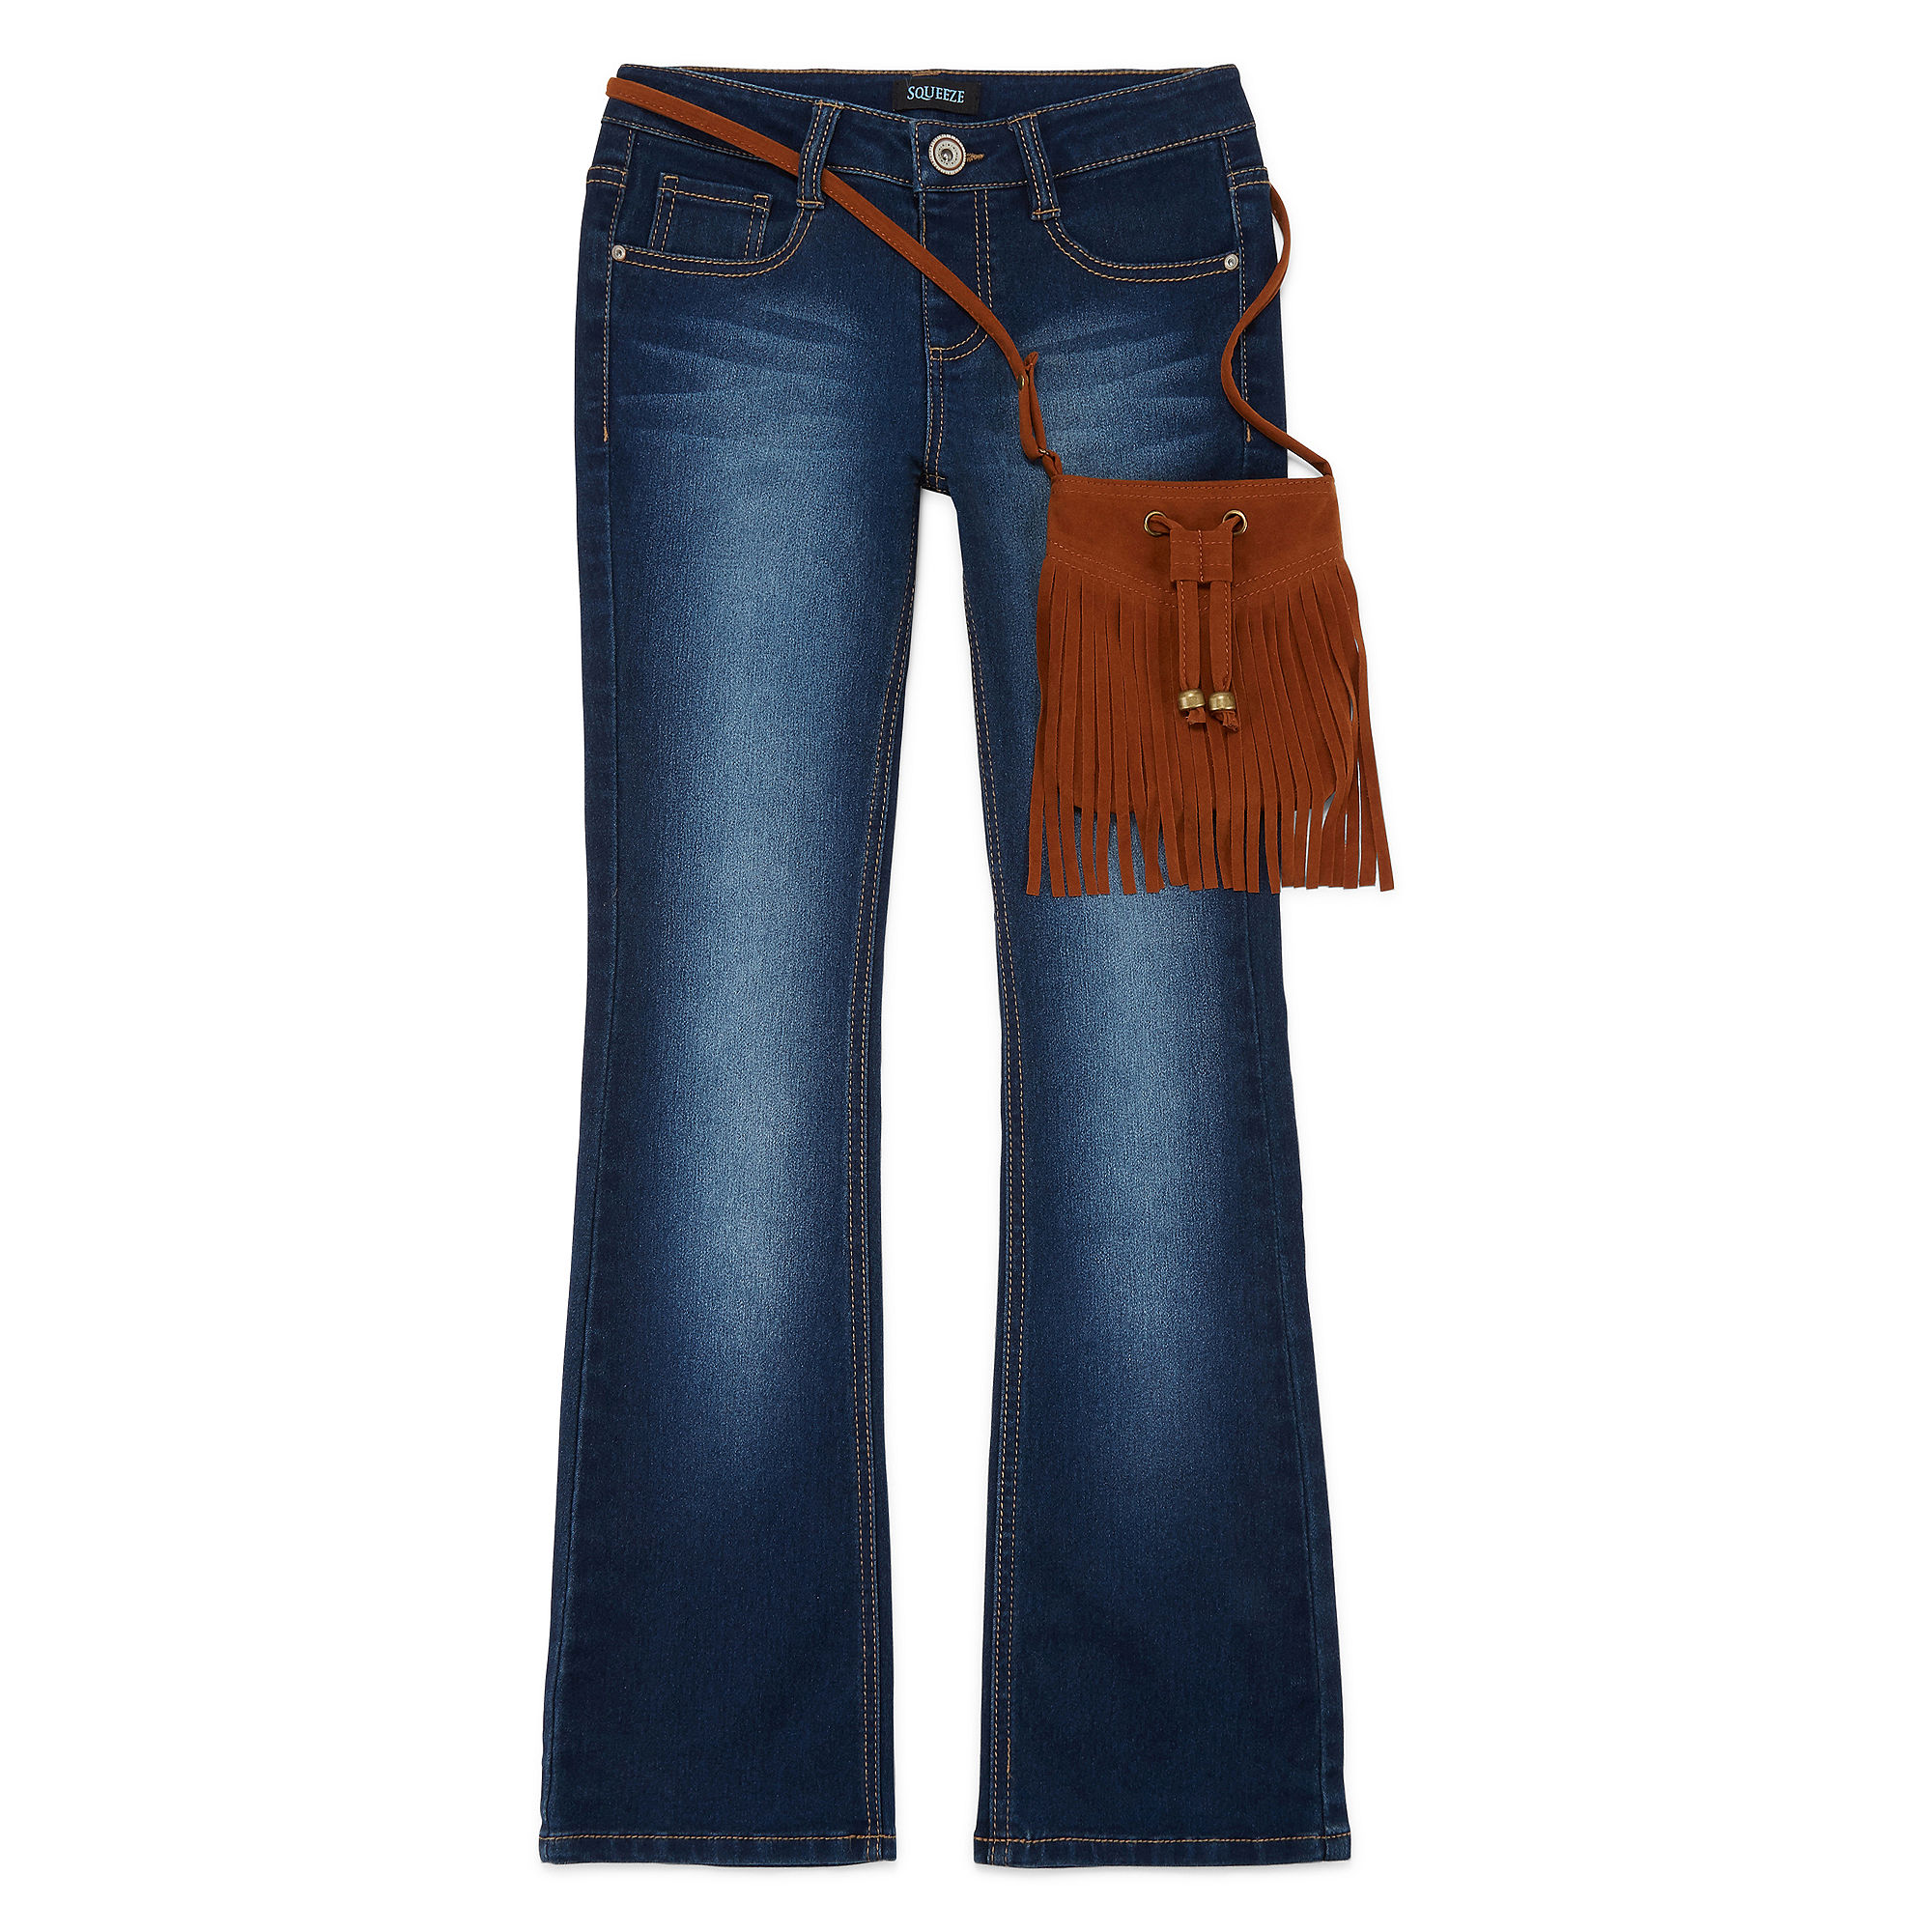 Squeeze Bootcut Jeans and Faux-Suede Fringe Crossbody Bag Set - Girls 7-14